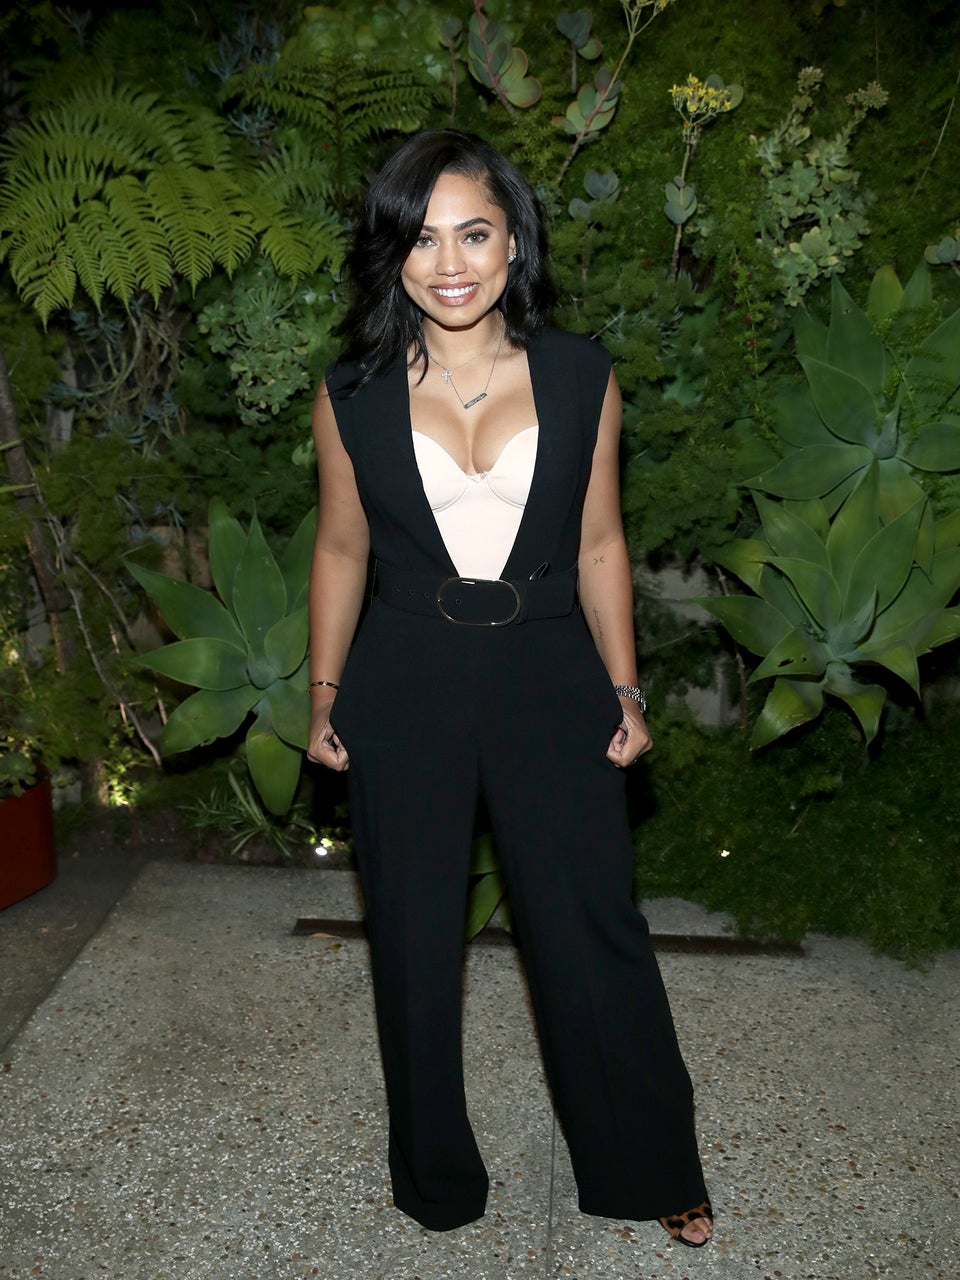 Ayesha Curry Gives a Sneak Peek of Her First Cookware Collection